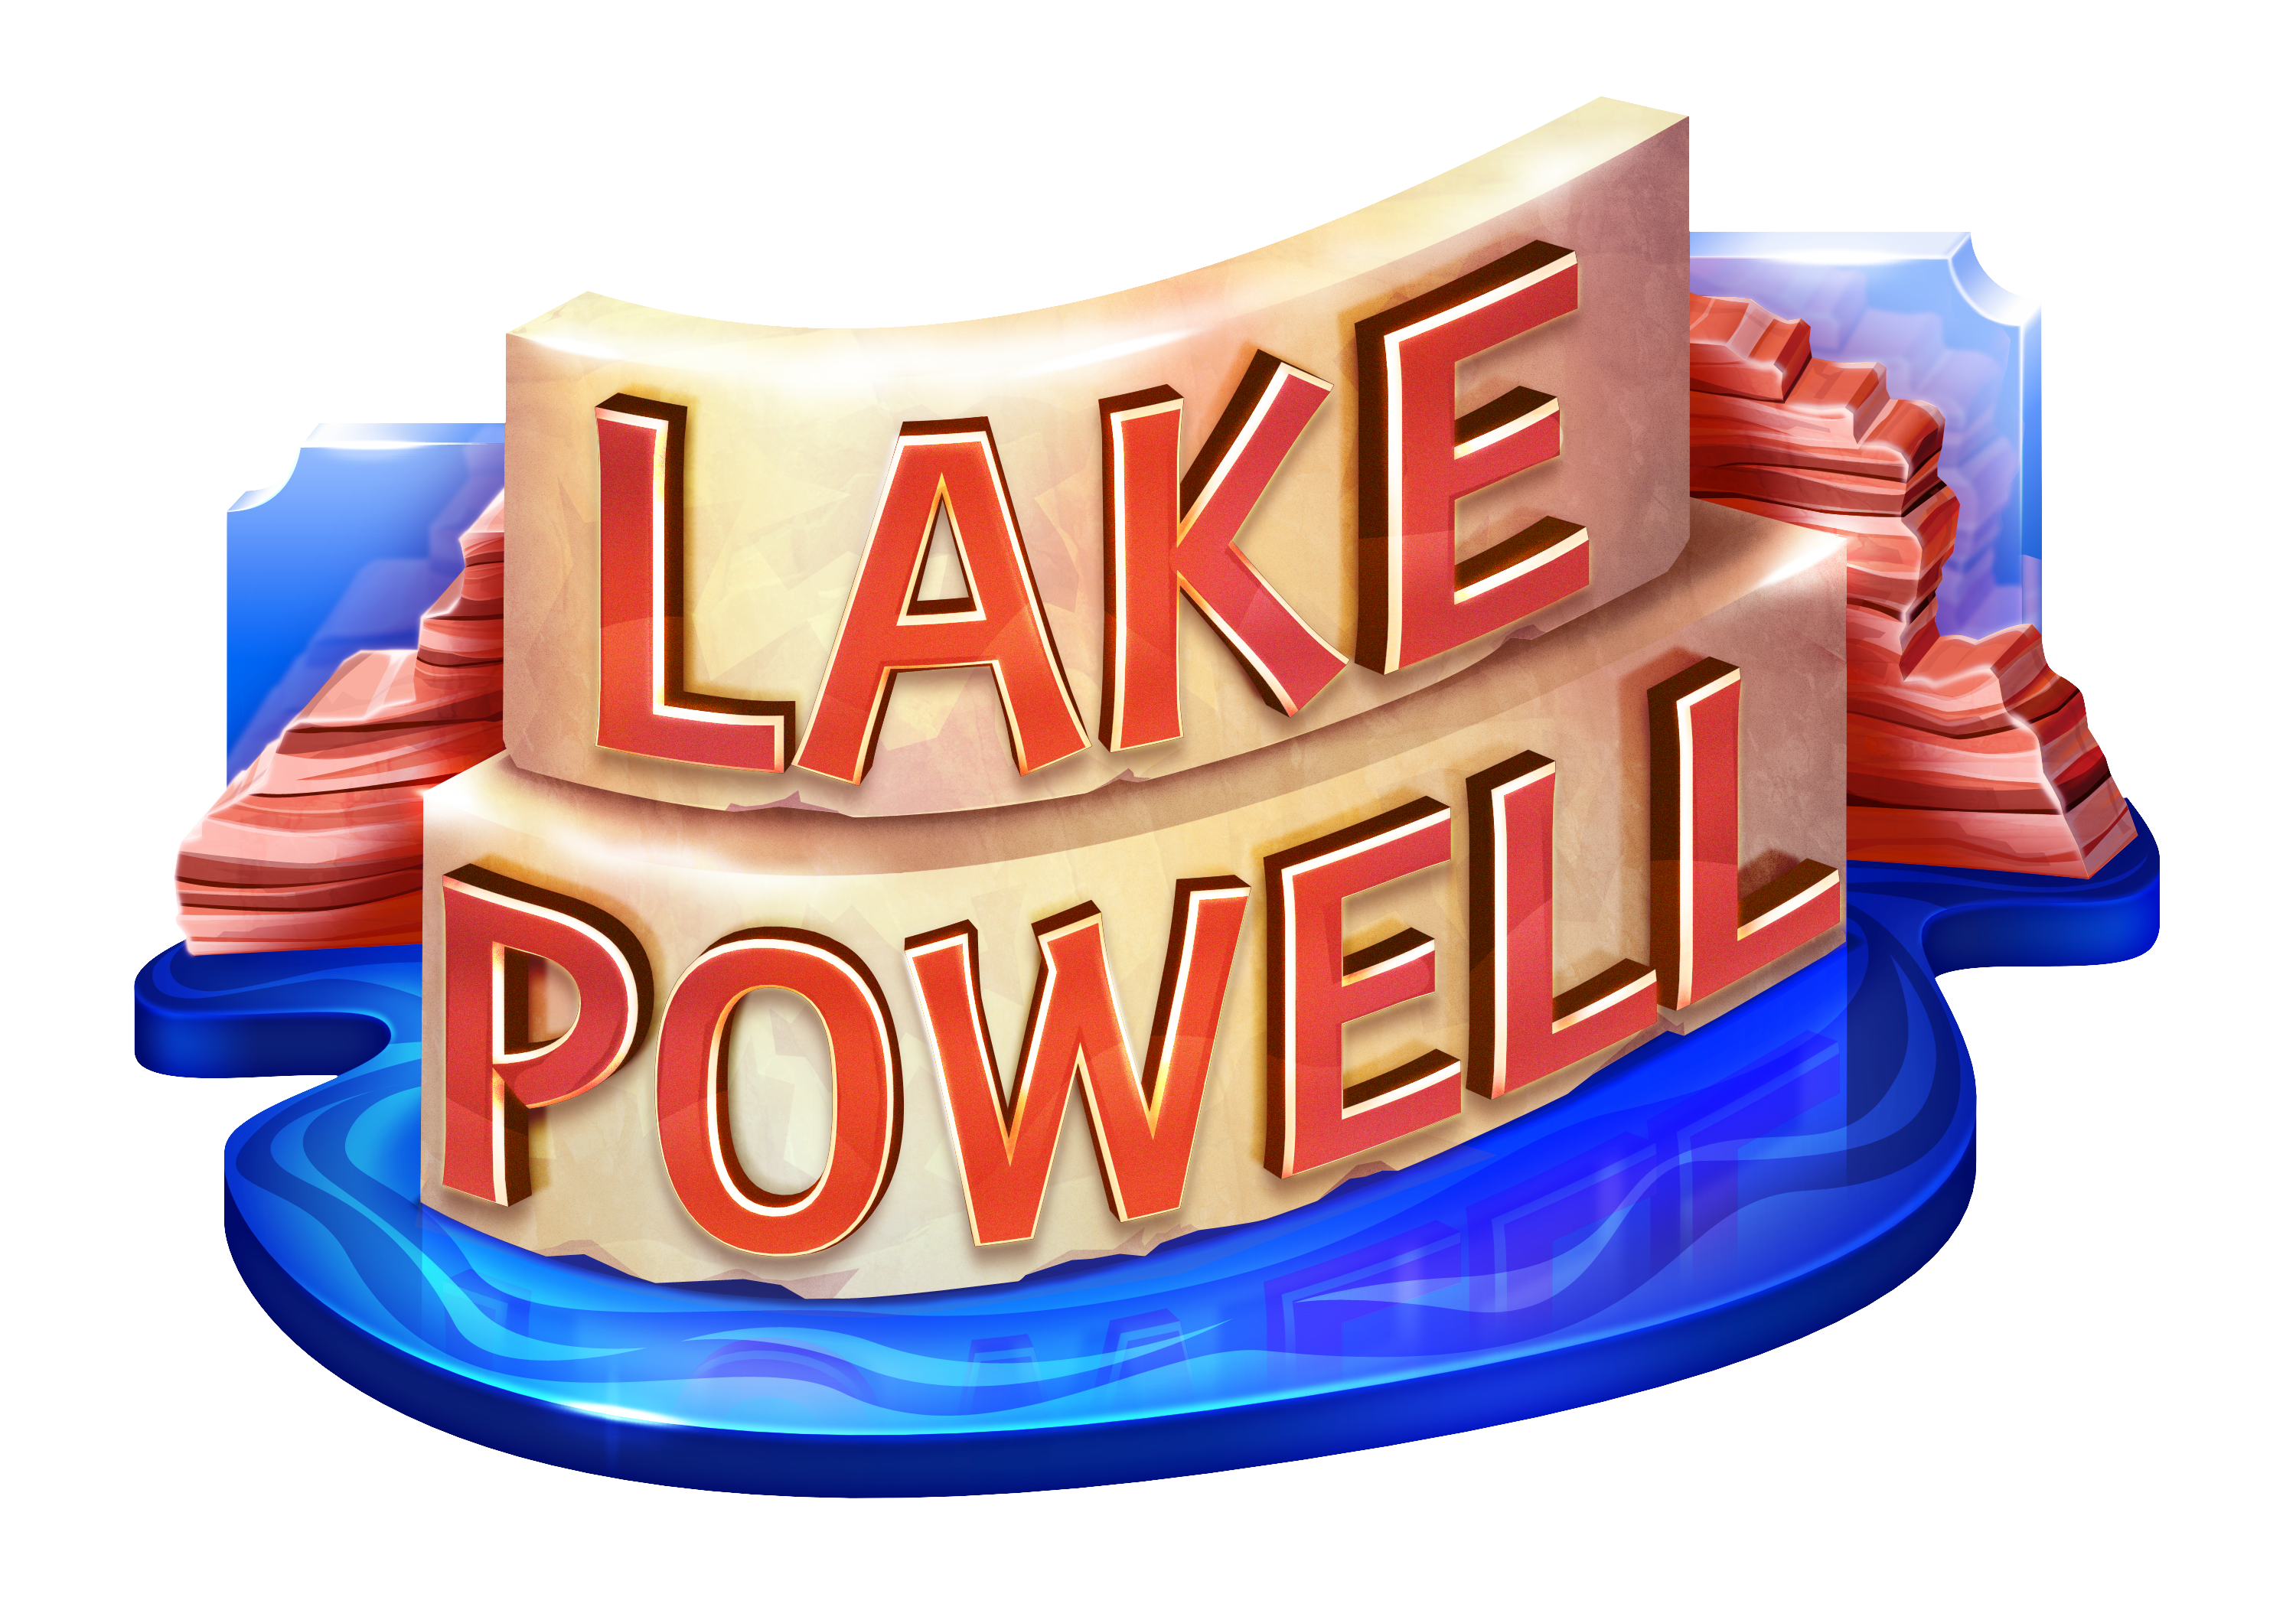 Lake Powell course logo